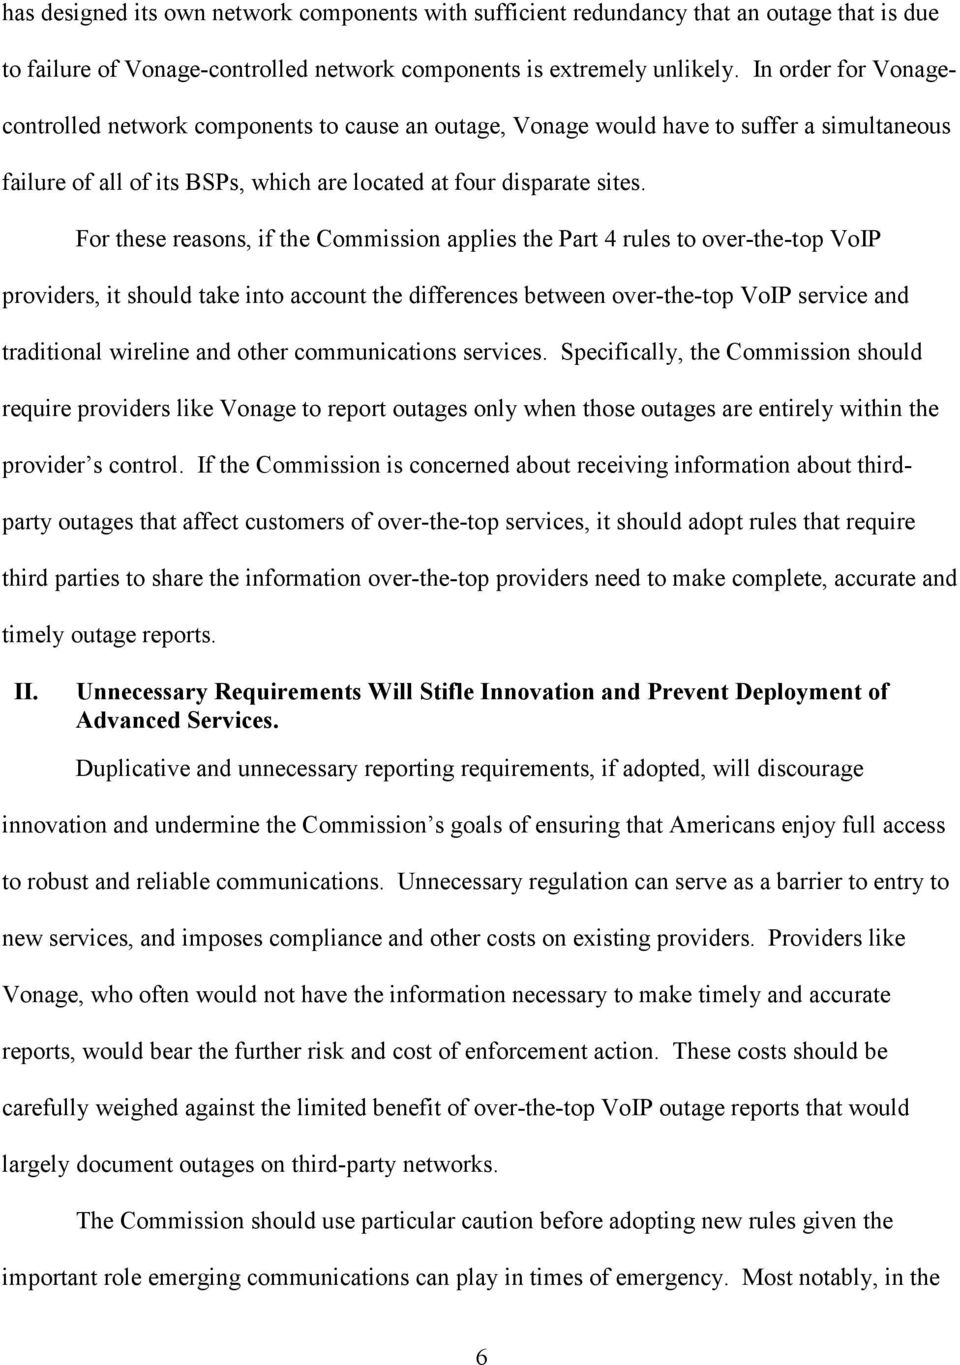 For these reasons, if the Commission applies the Part 4 rules to over-the-top VoIP providers, it should take into account the differences between over-the-top VoIP service and traditional wireline